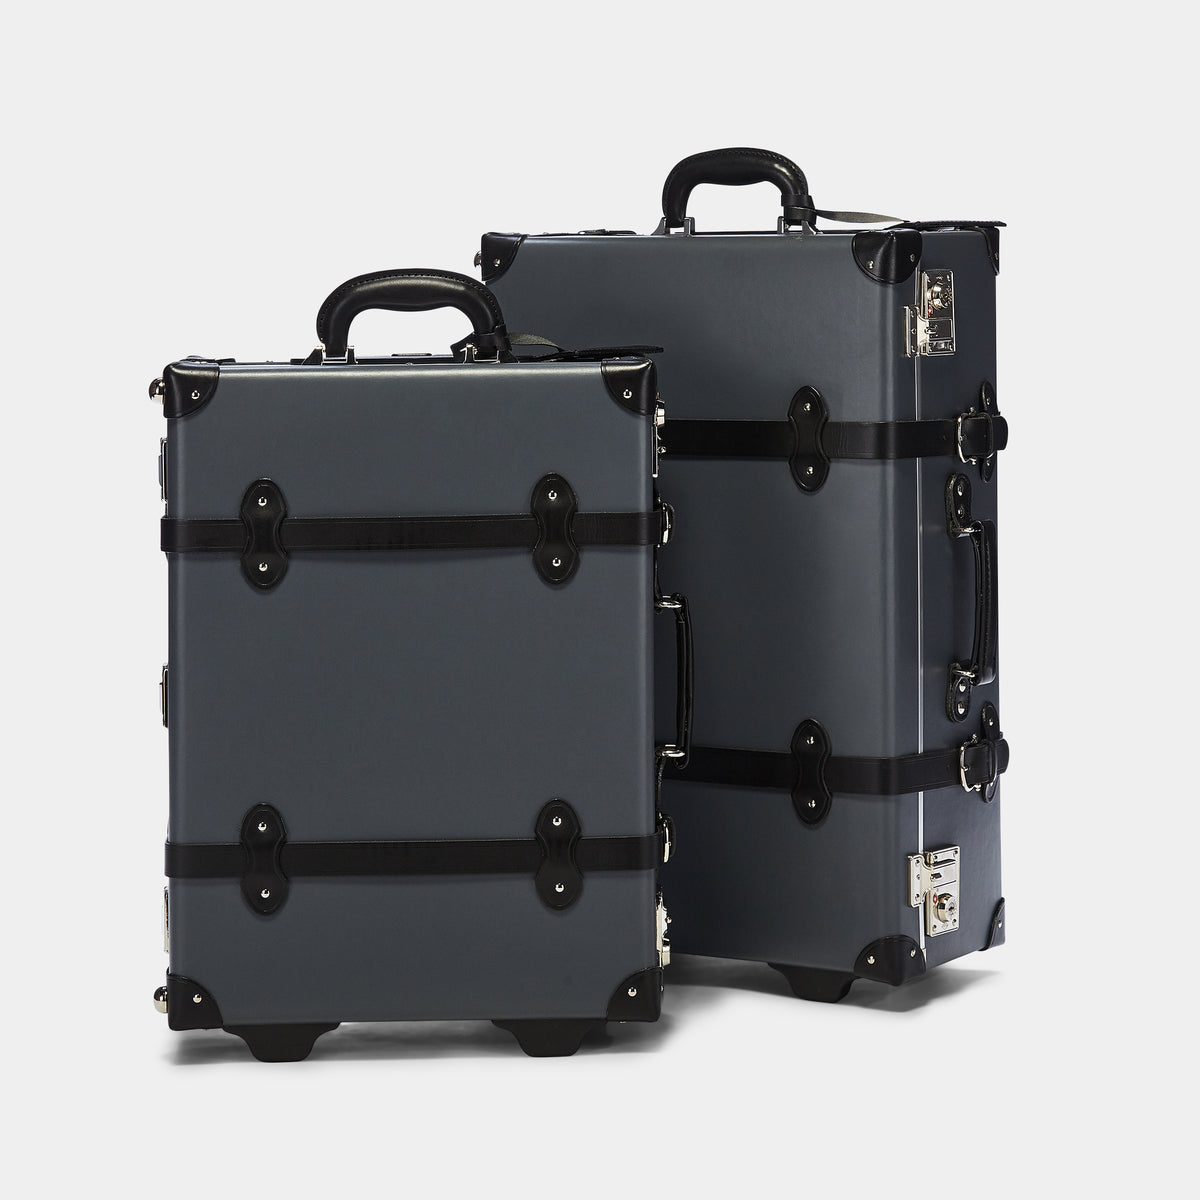 The Reiss X SteamLine - Grey Carryon